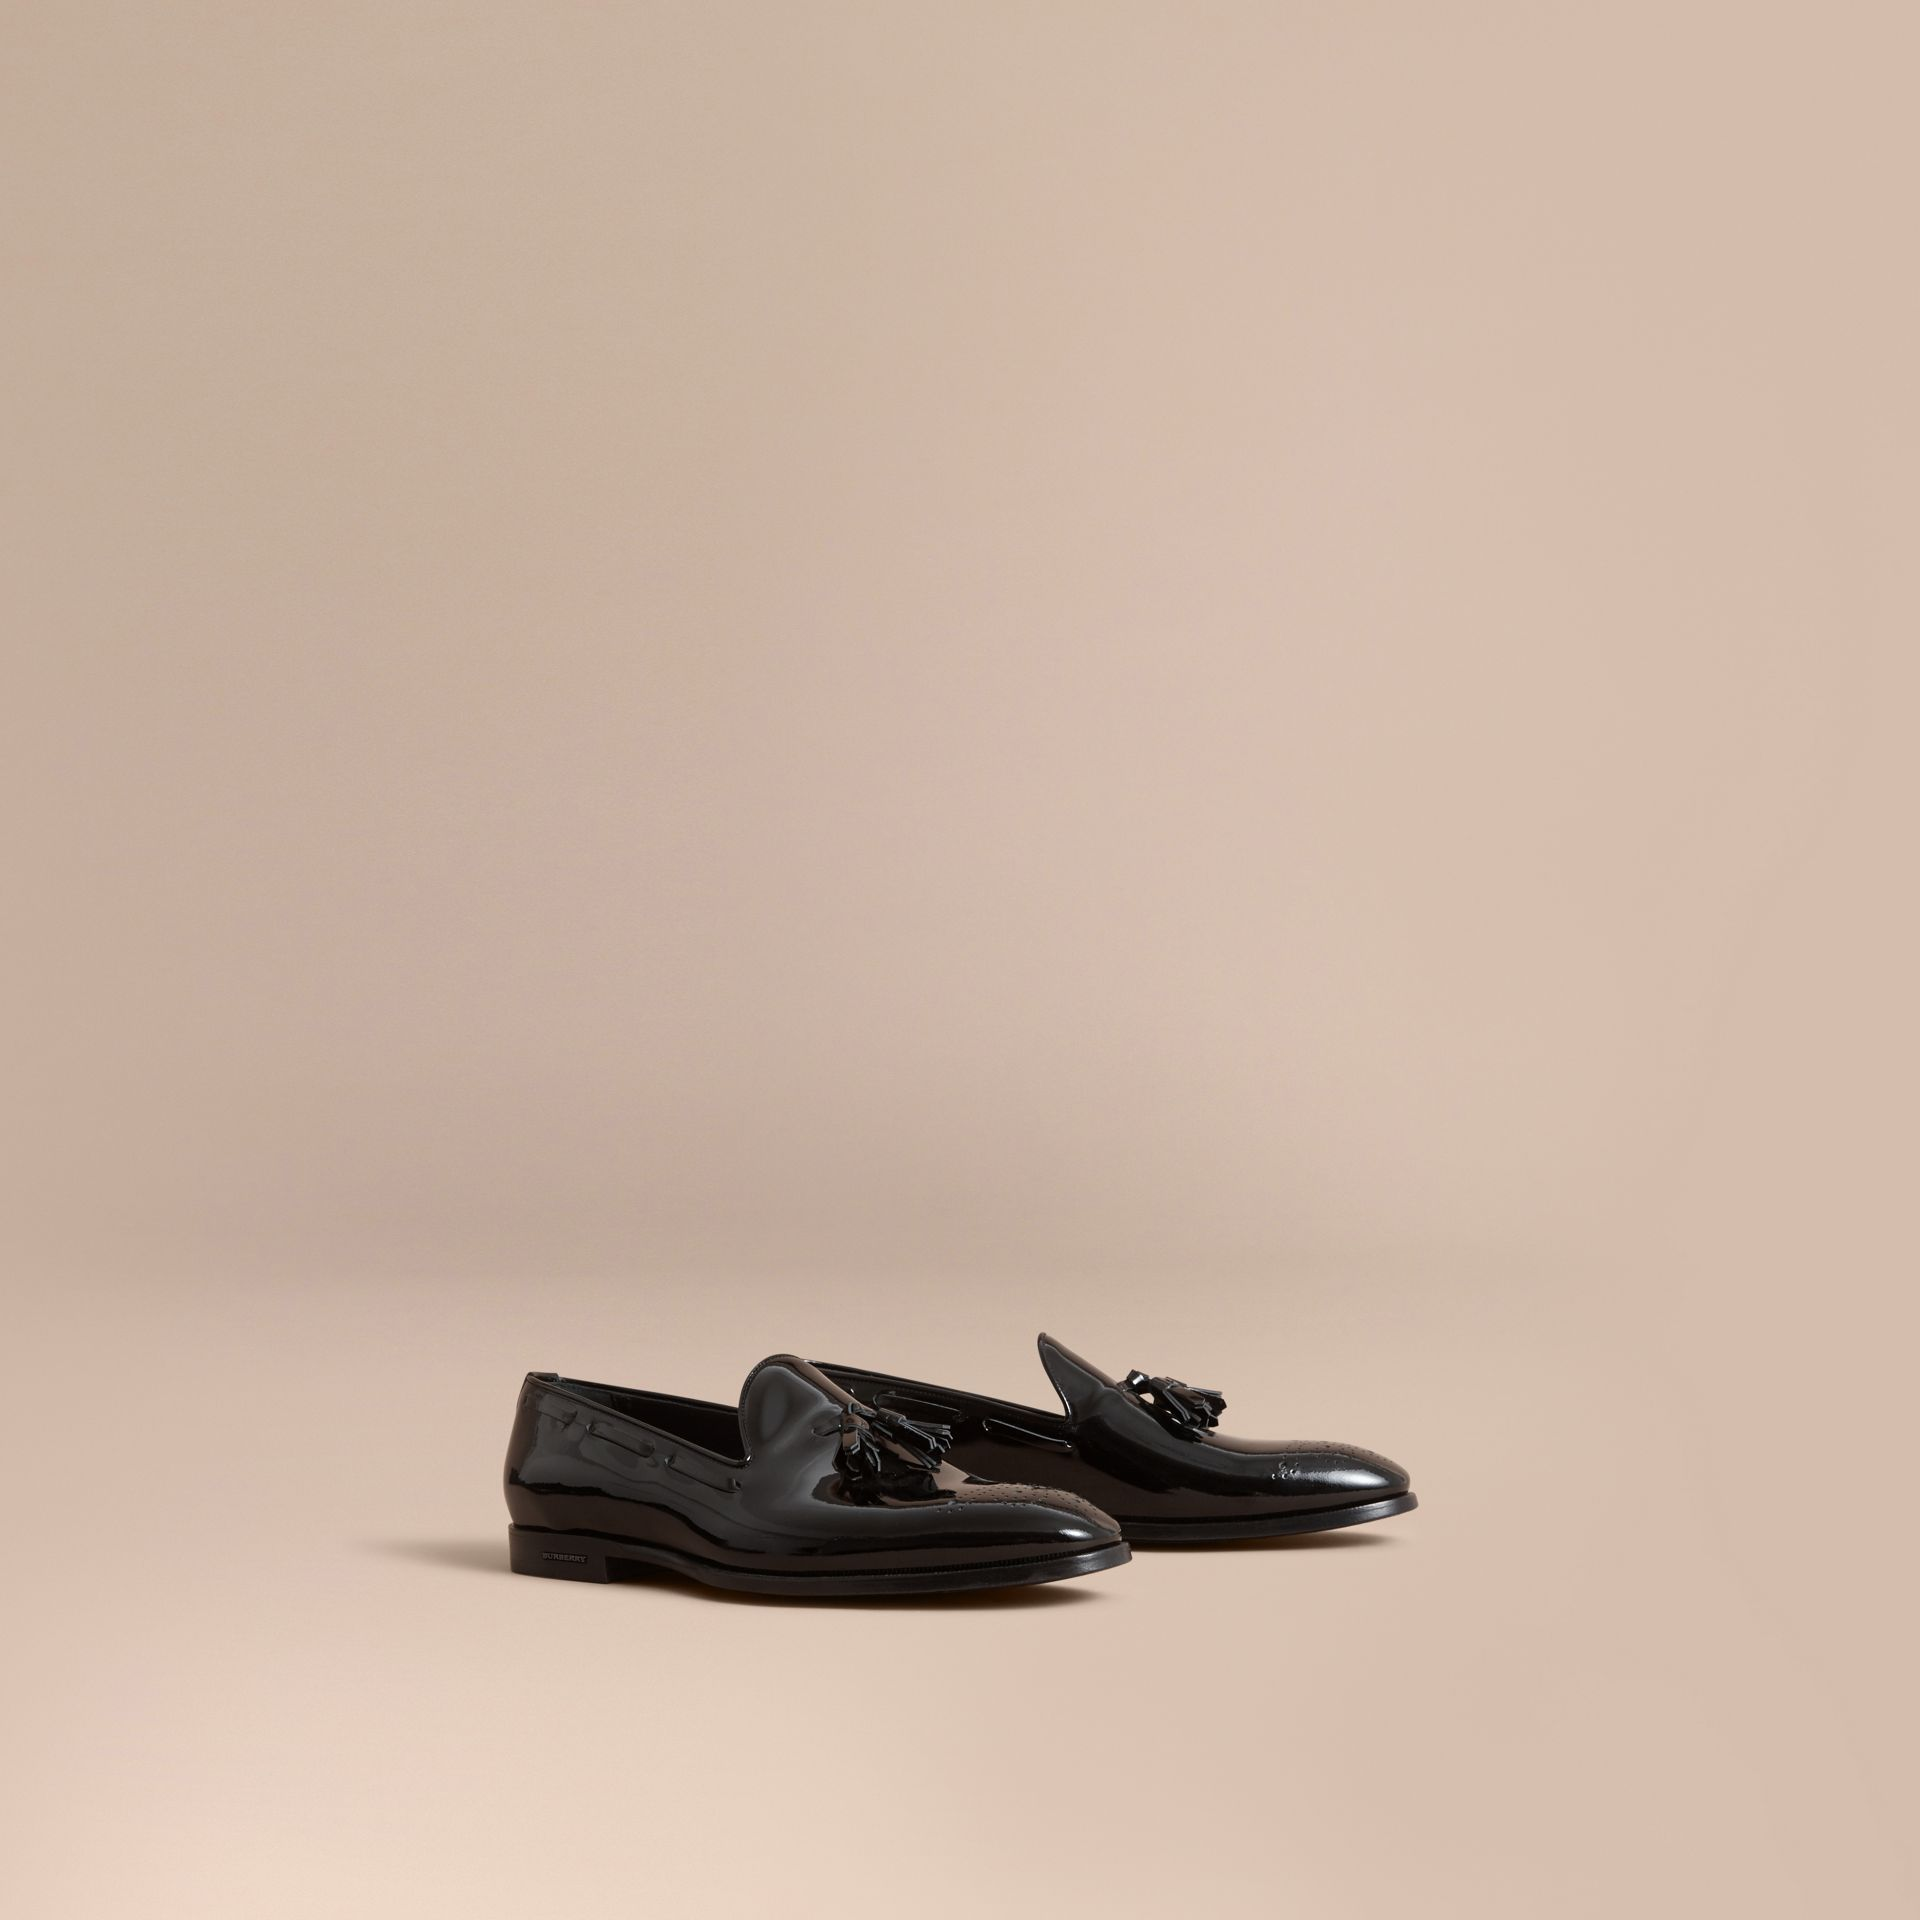 Burberry Black Tasselled Patent Leather Loafers